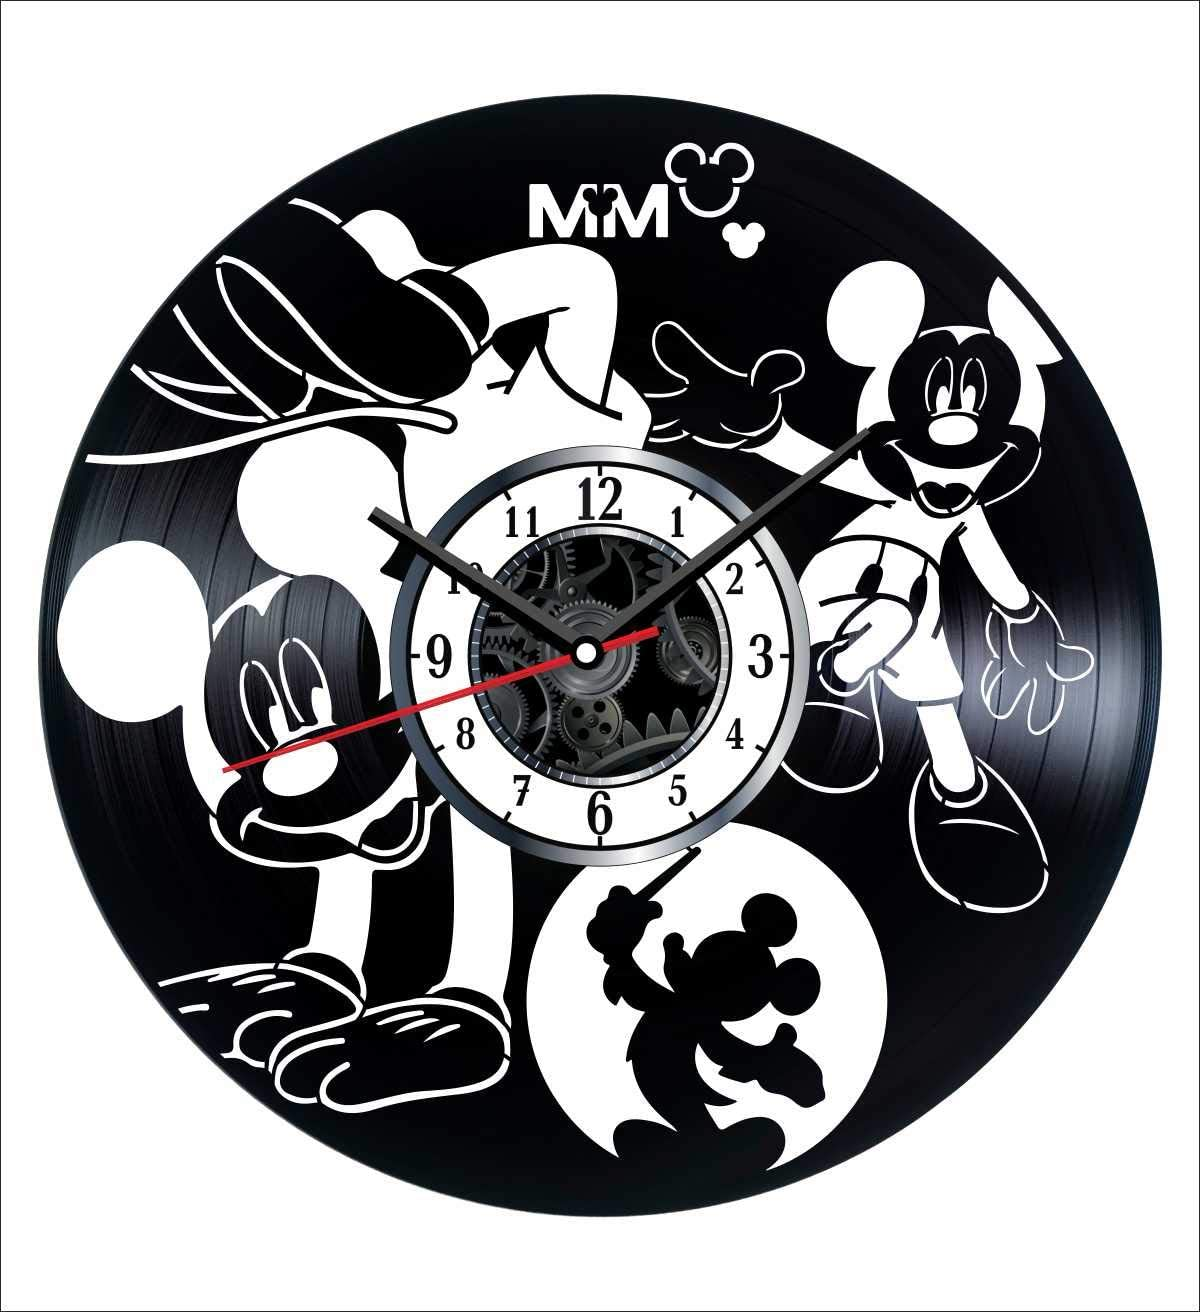 Mickey Mouse Wall Clock Vintage Record - Get Unique Home and Office Decor Bedroom Kitchen Kids Living Room - Gifts for Men Women Kids Father Mother - Modern Wall Art Design - Free Personalization